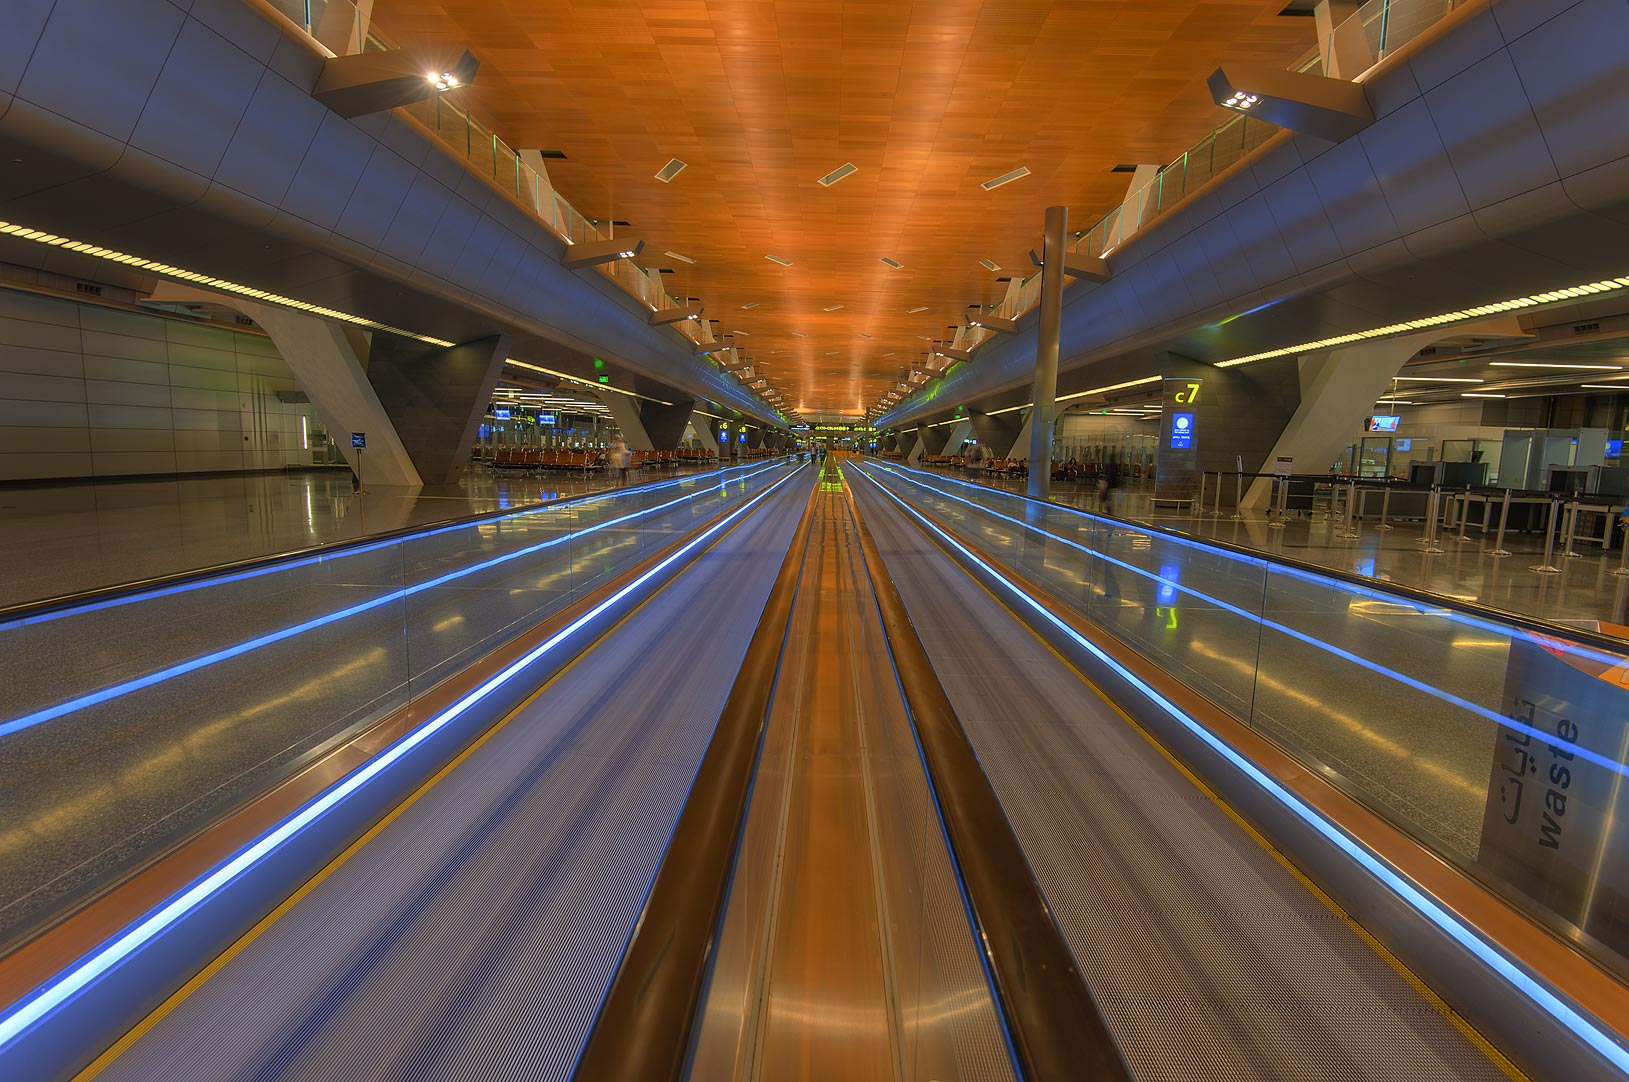 Perspective view of airport escalators (moving...International Airport. Doha, Qatar